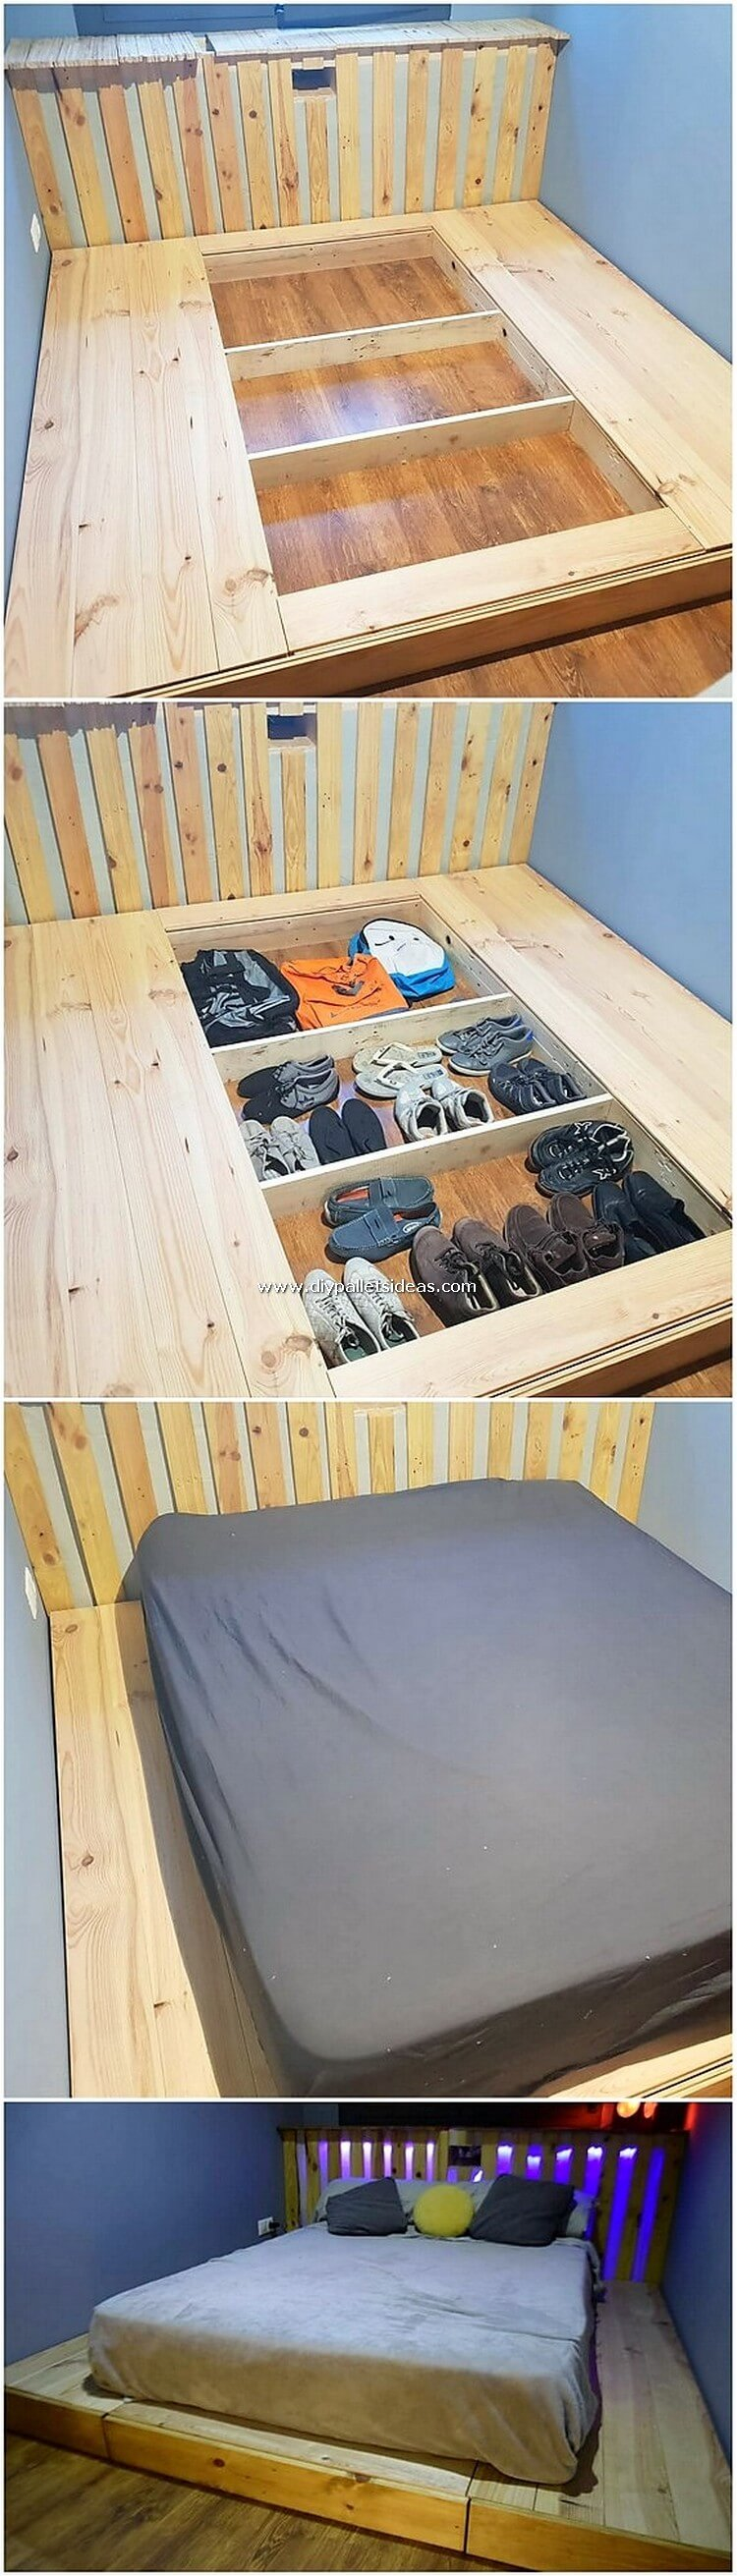 Pallet Bed with Shoe Storage